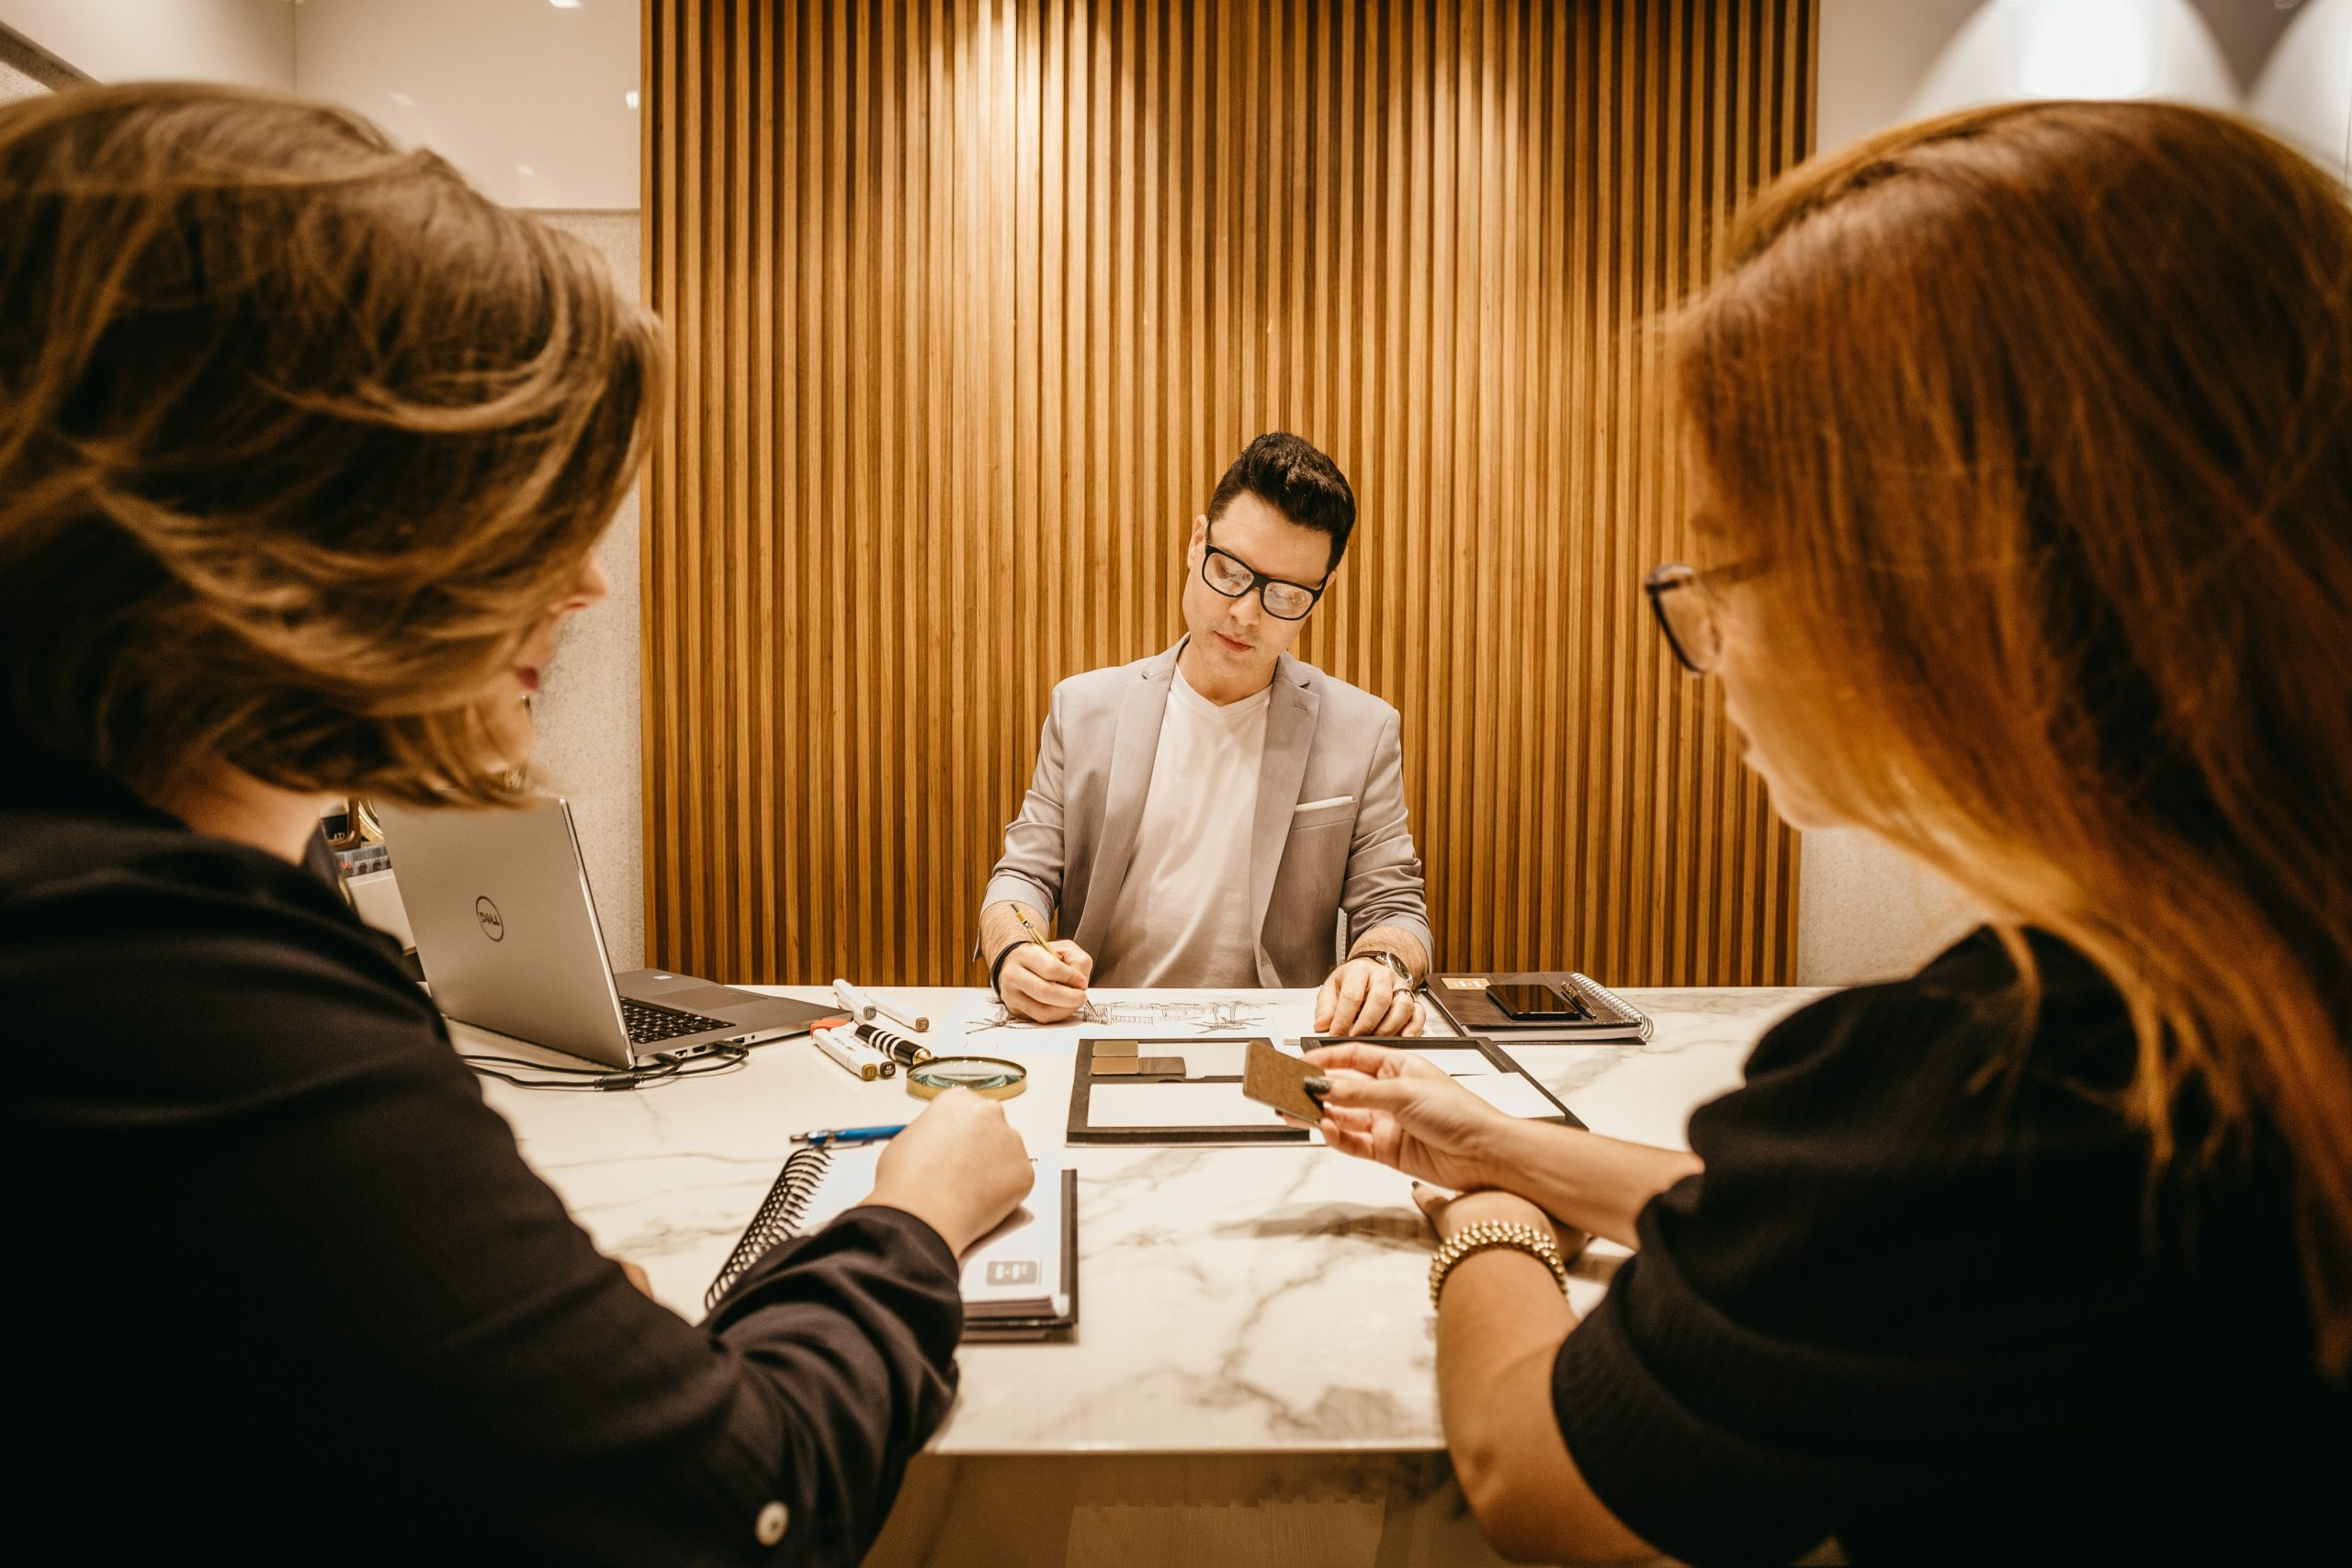 Top 10 Best Recruitment Agencies in Singapore to Land Your Dream Job